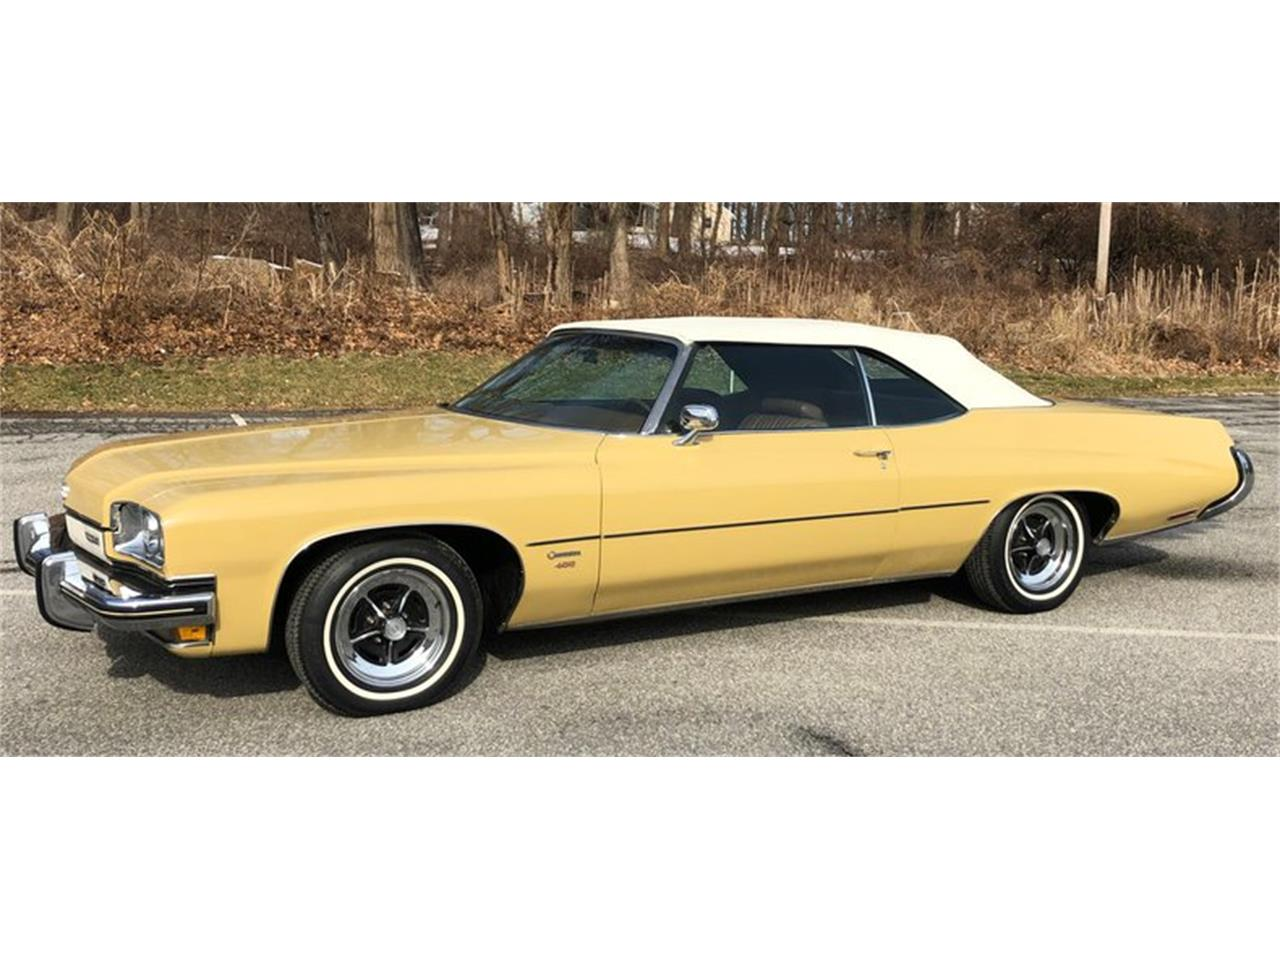 Large Picture of Classic 1973 Buick Centurion located in Pennsylvania - $21,500.00 - PBP7